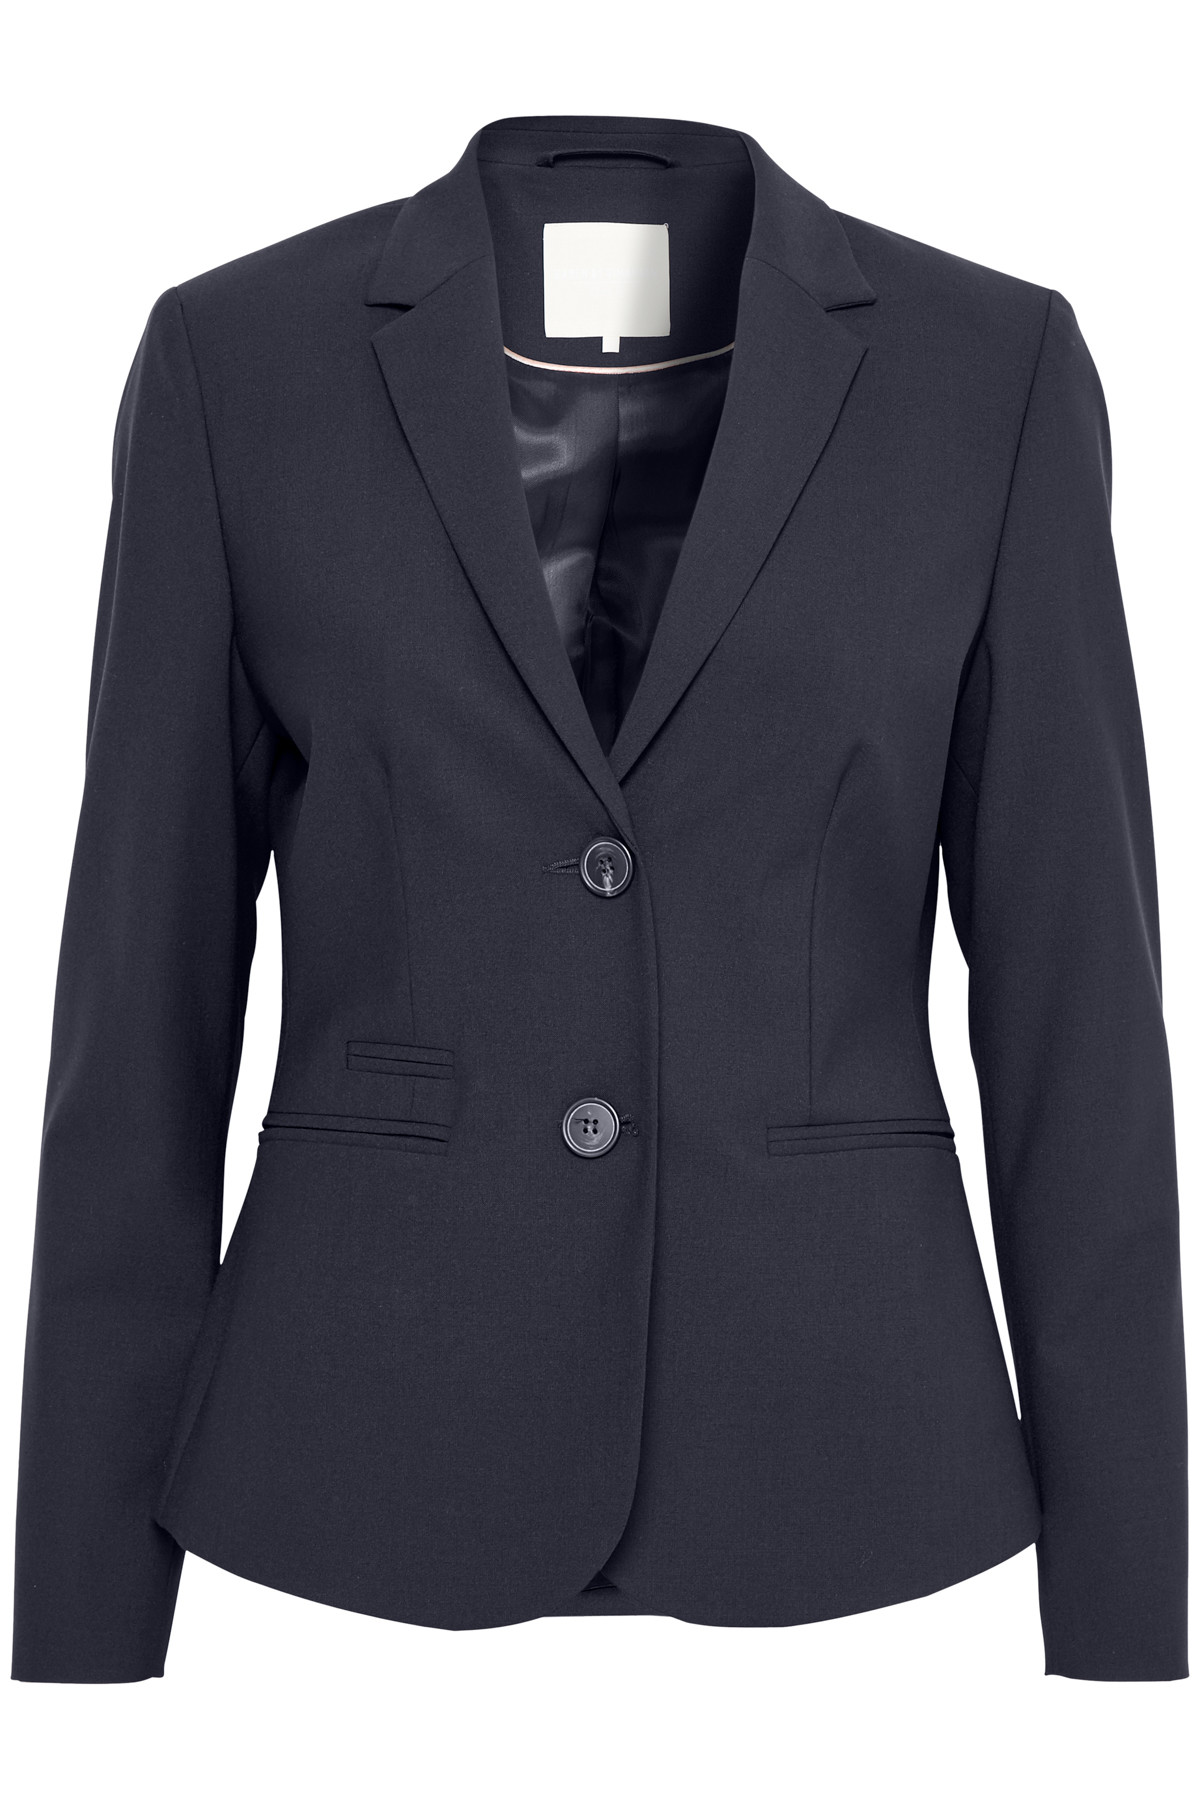 Image of   KAREN BY SIMONSEN SYDNEY BLAZER 10102001 D (Dark Blue 40520, 46)